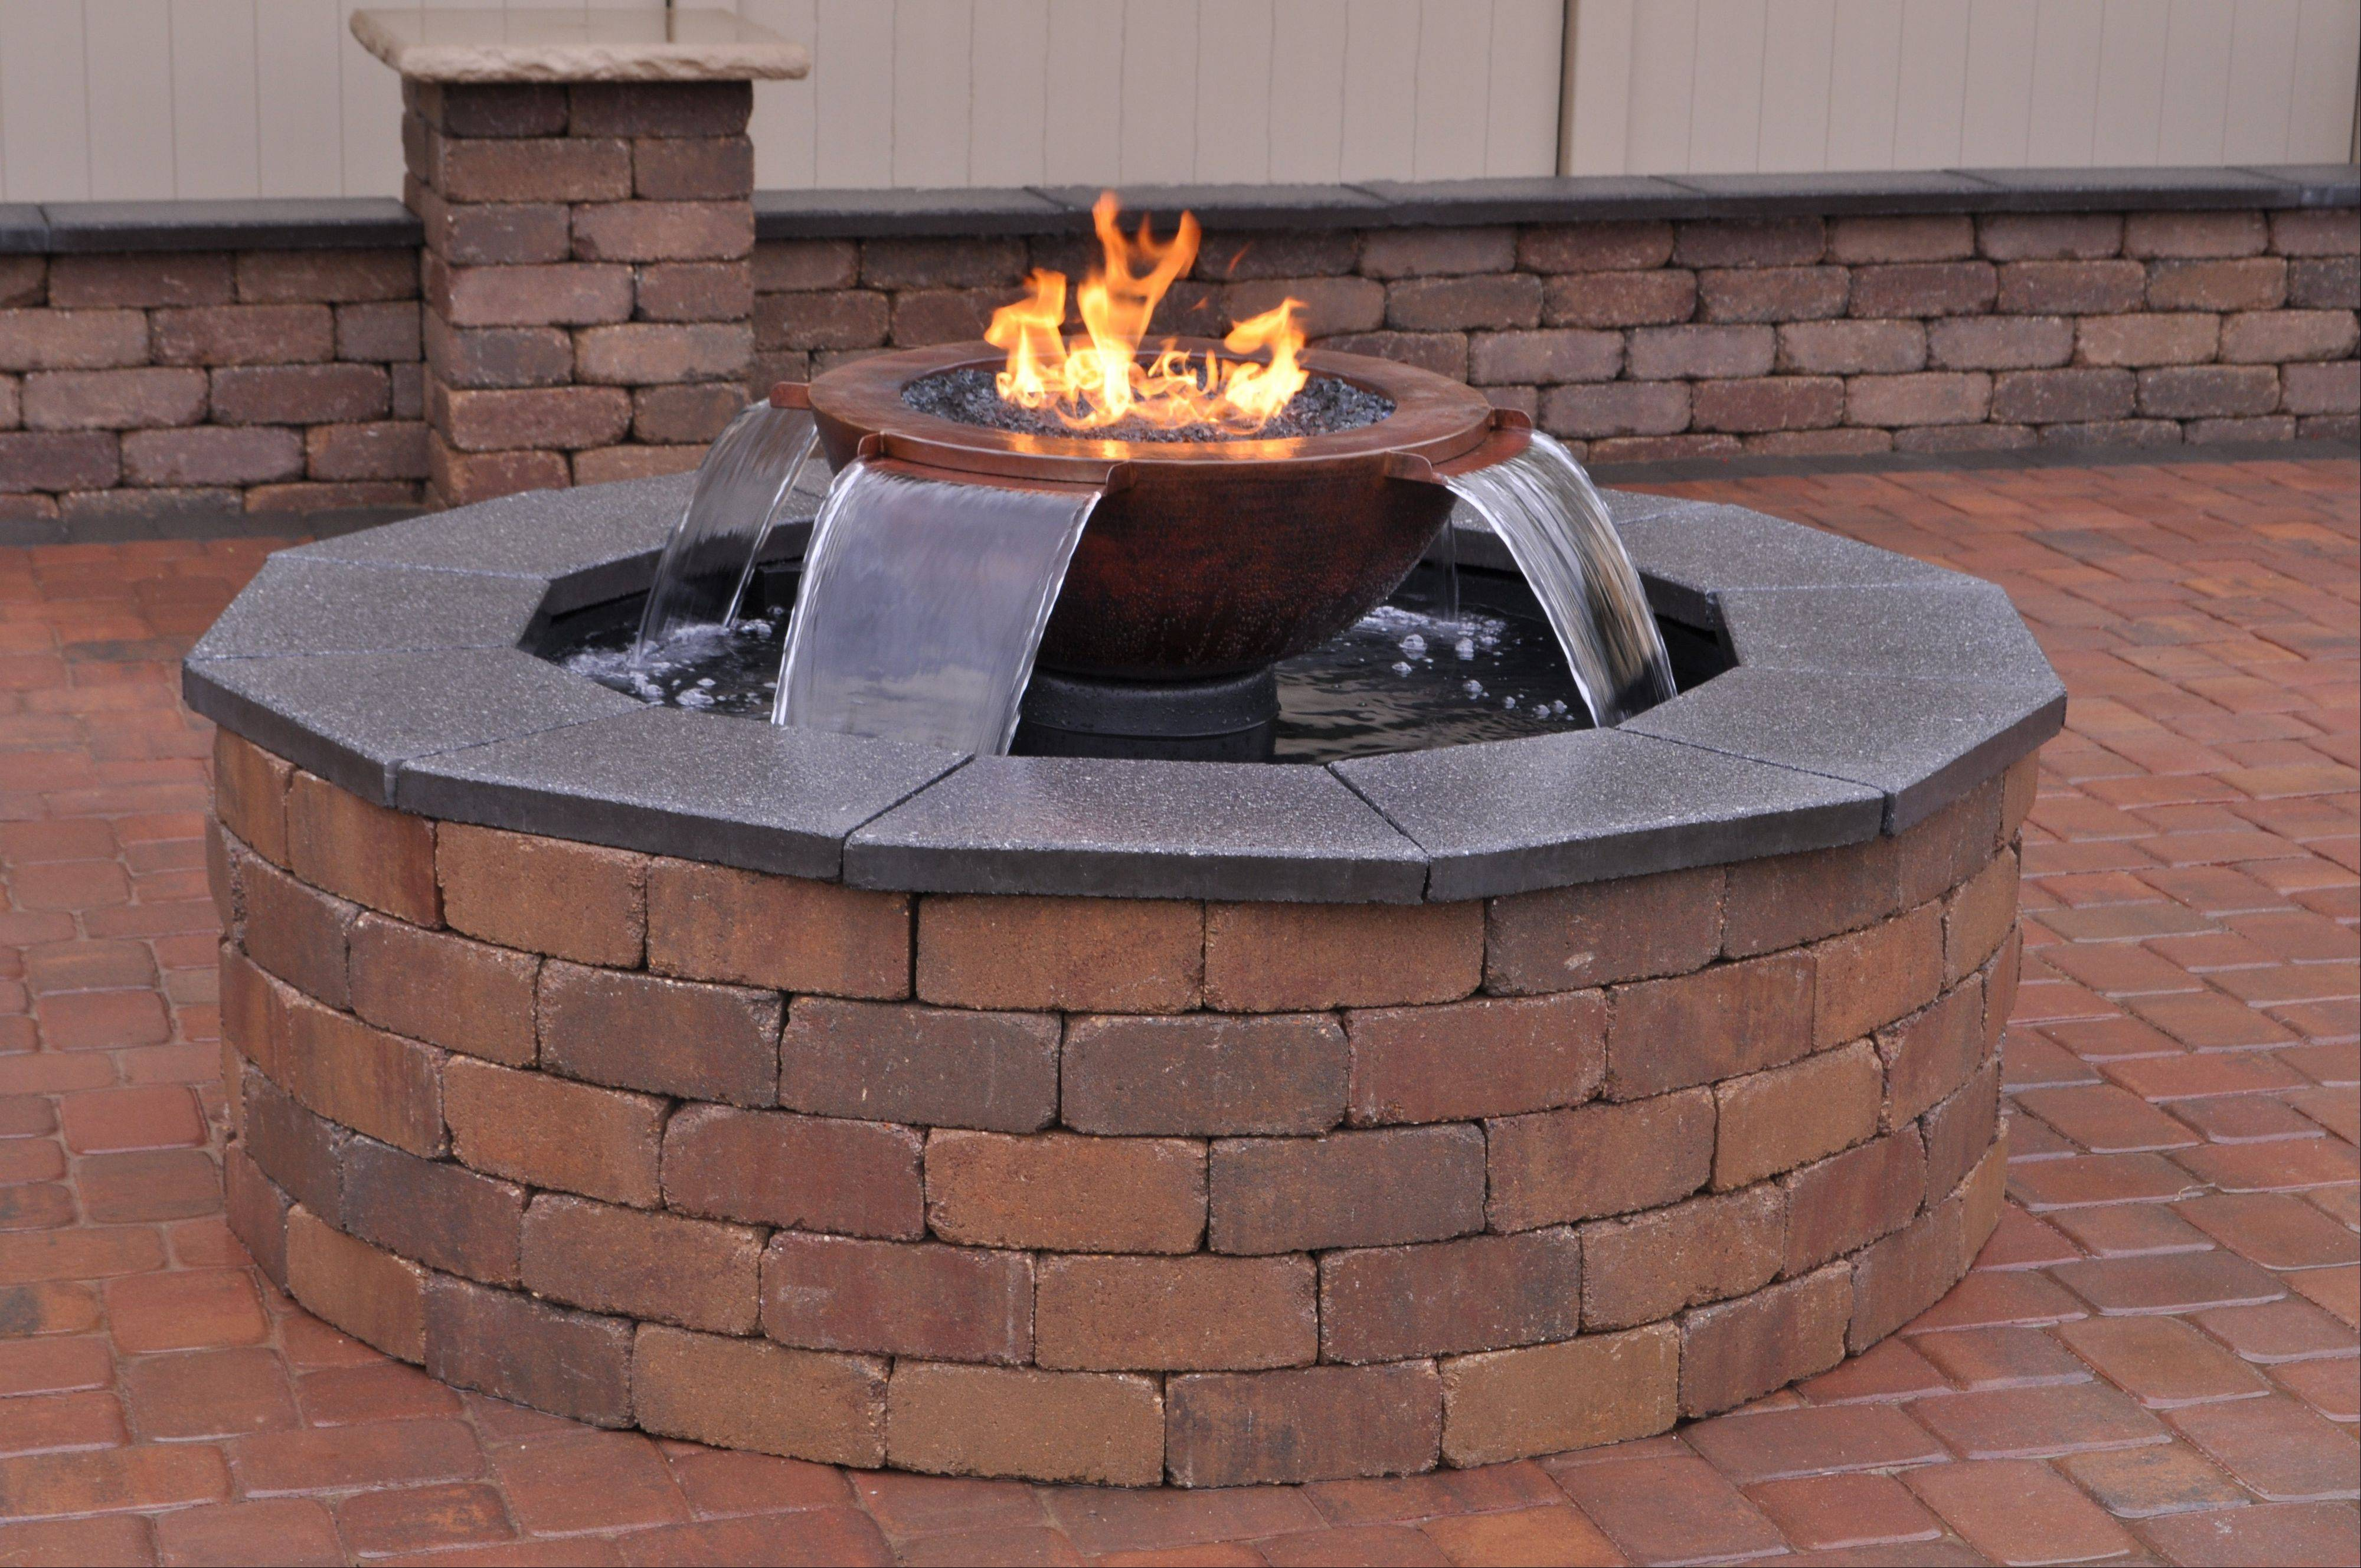 The Evolution 360 Series by HPC, sold by Hearth and Home of Mount Prospect, combines fire and water and comes as a fully assembled system that can be installed on virtually any patio.